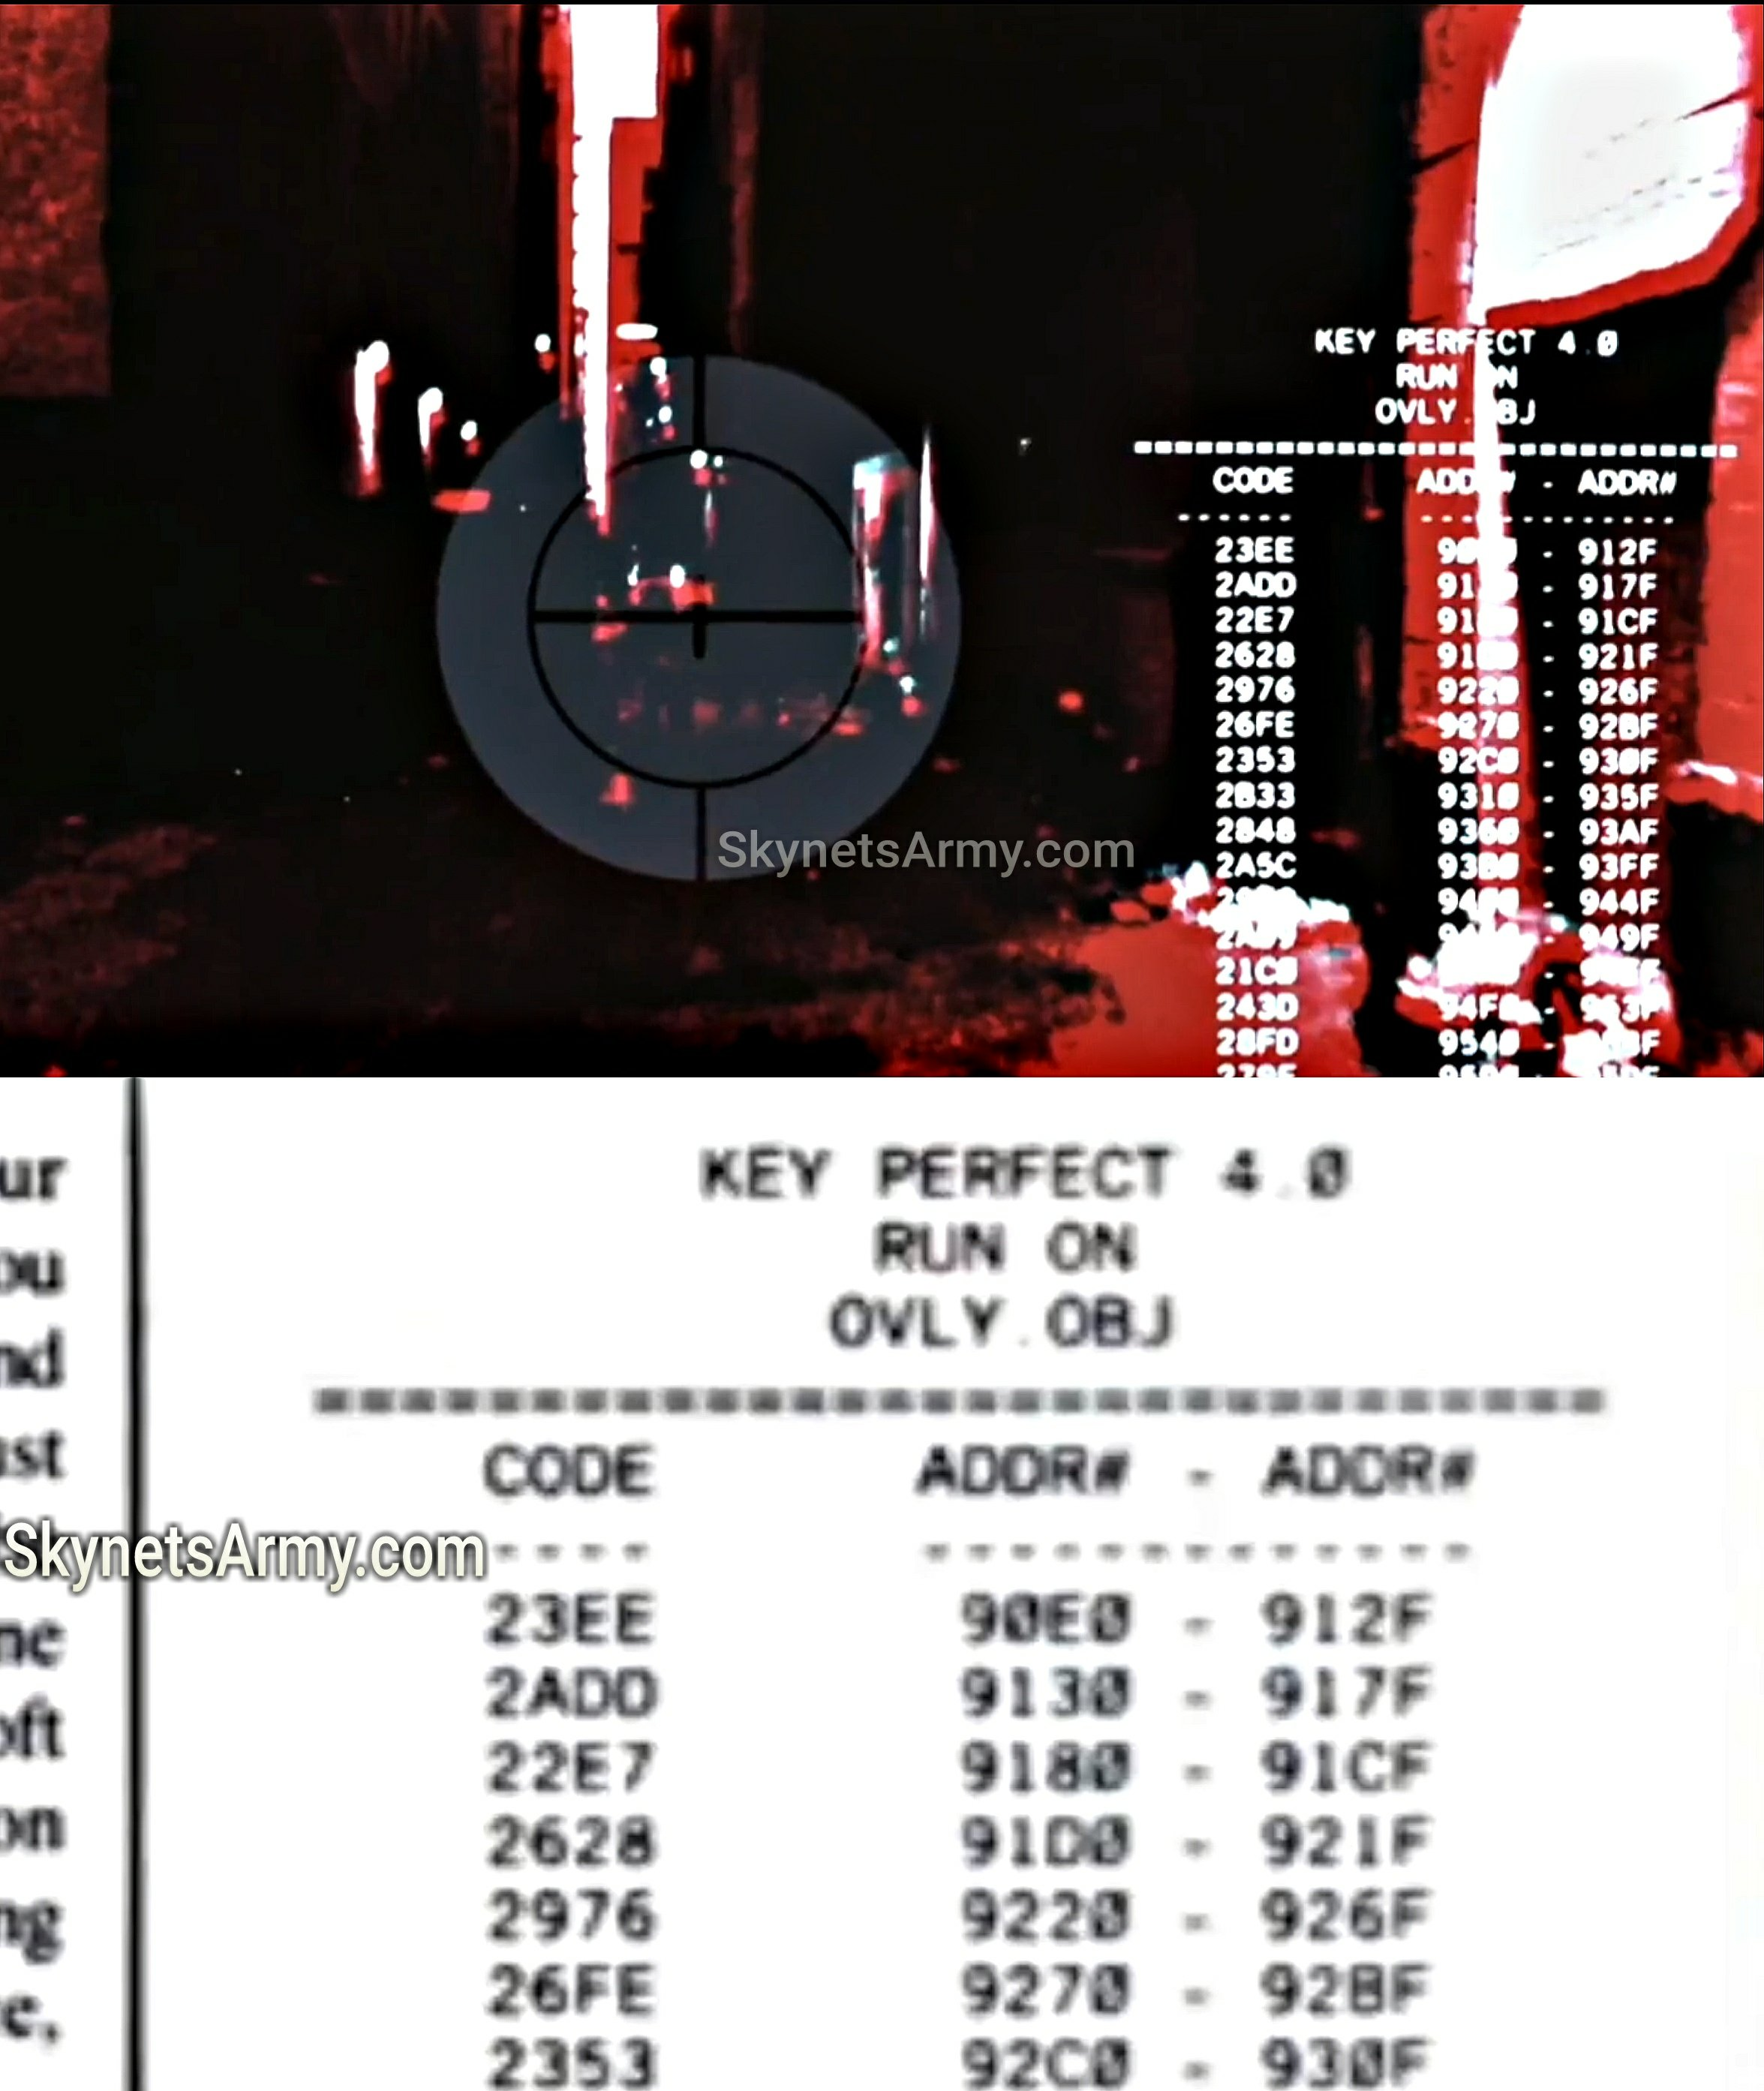 The TERMINATOR's display code is finally cracked! What does it mean